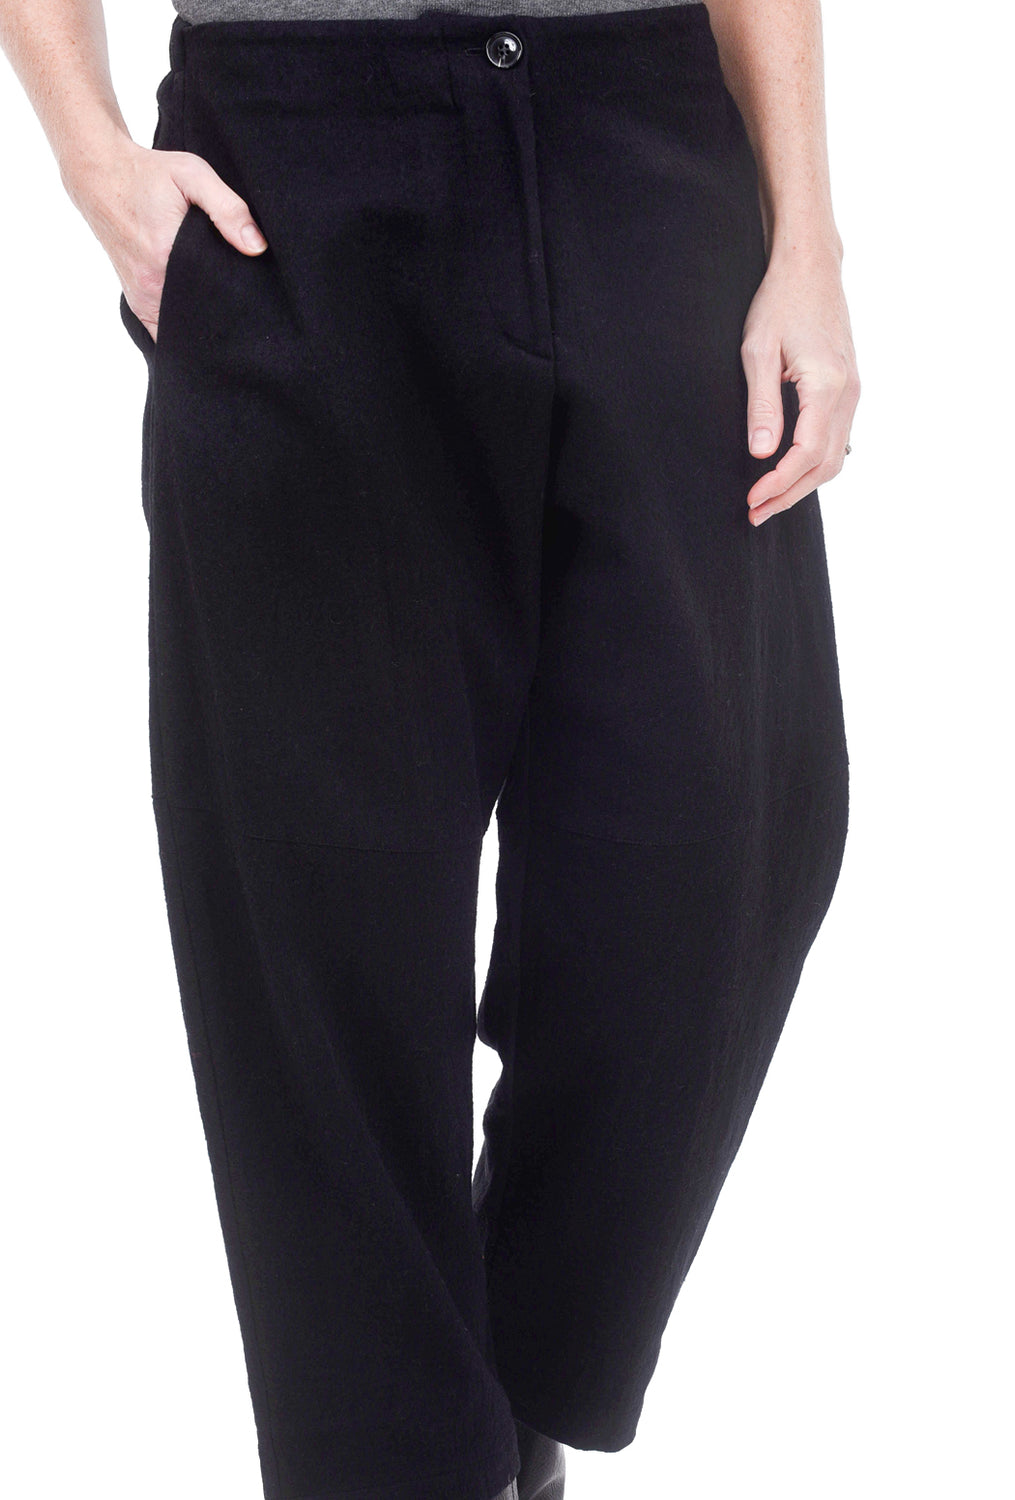 Filosofia FS Savannah Pants, Black